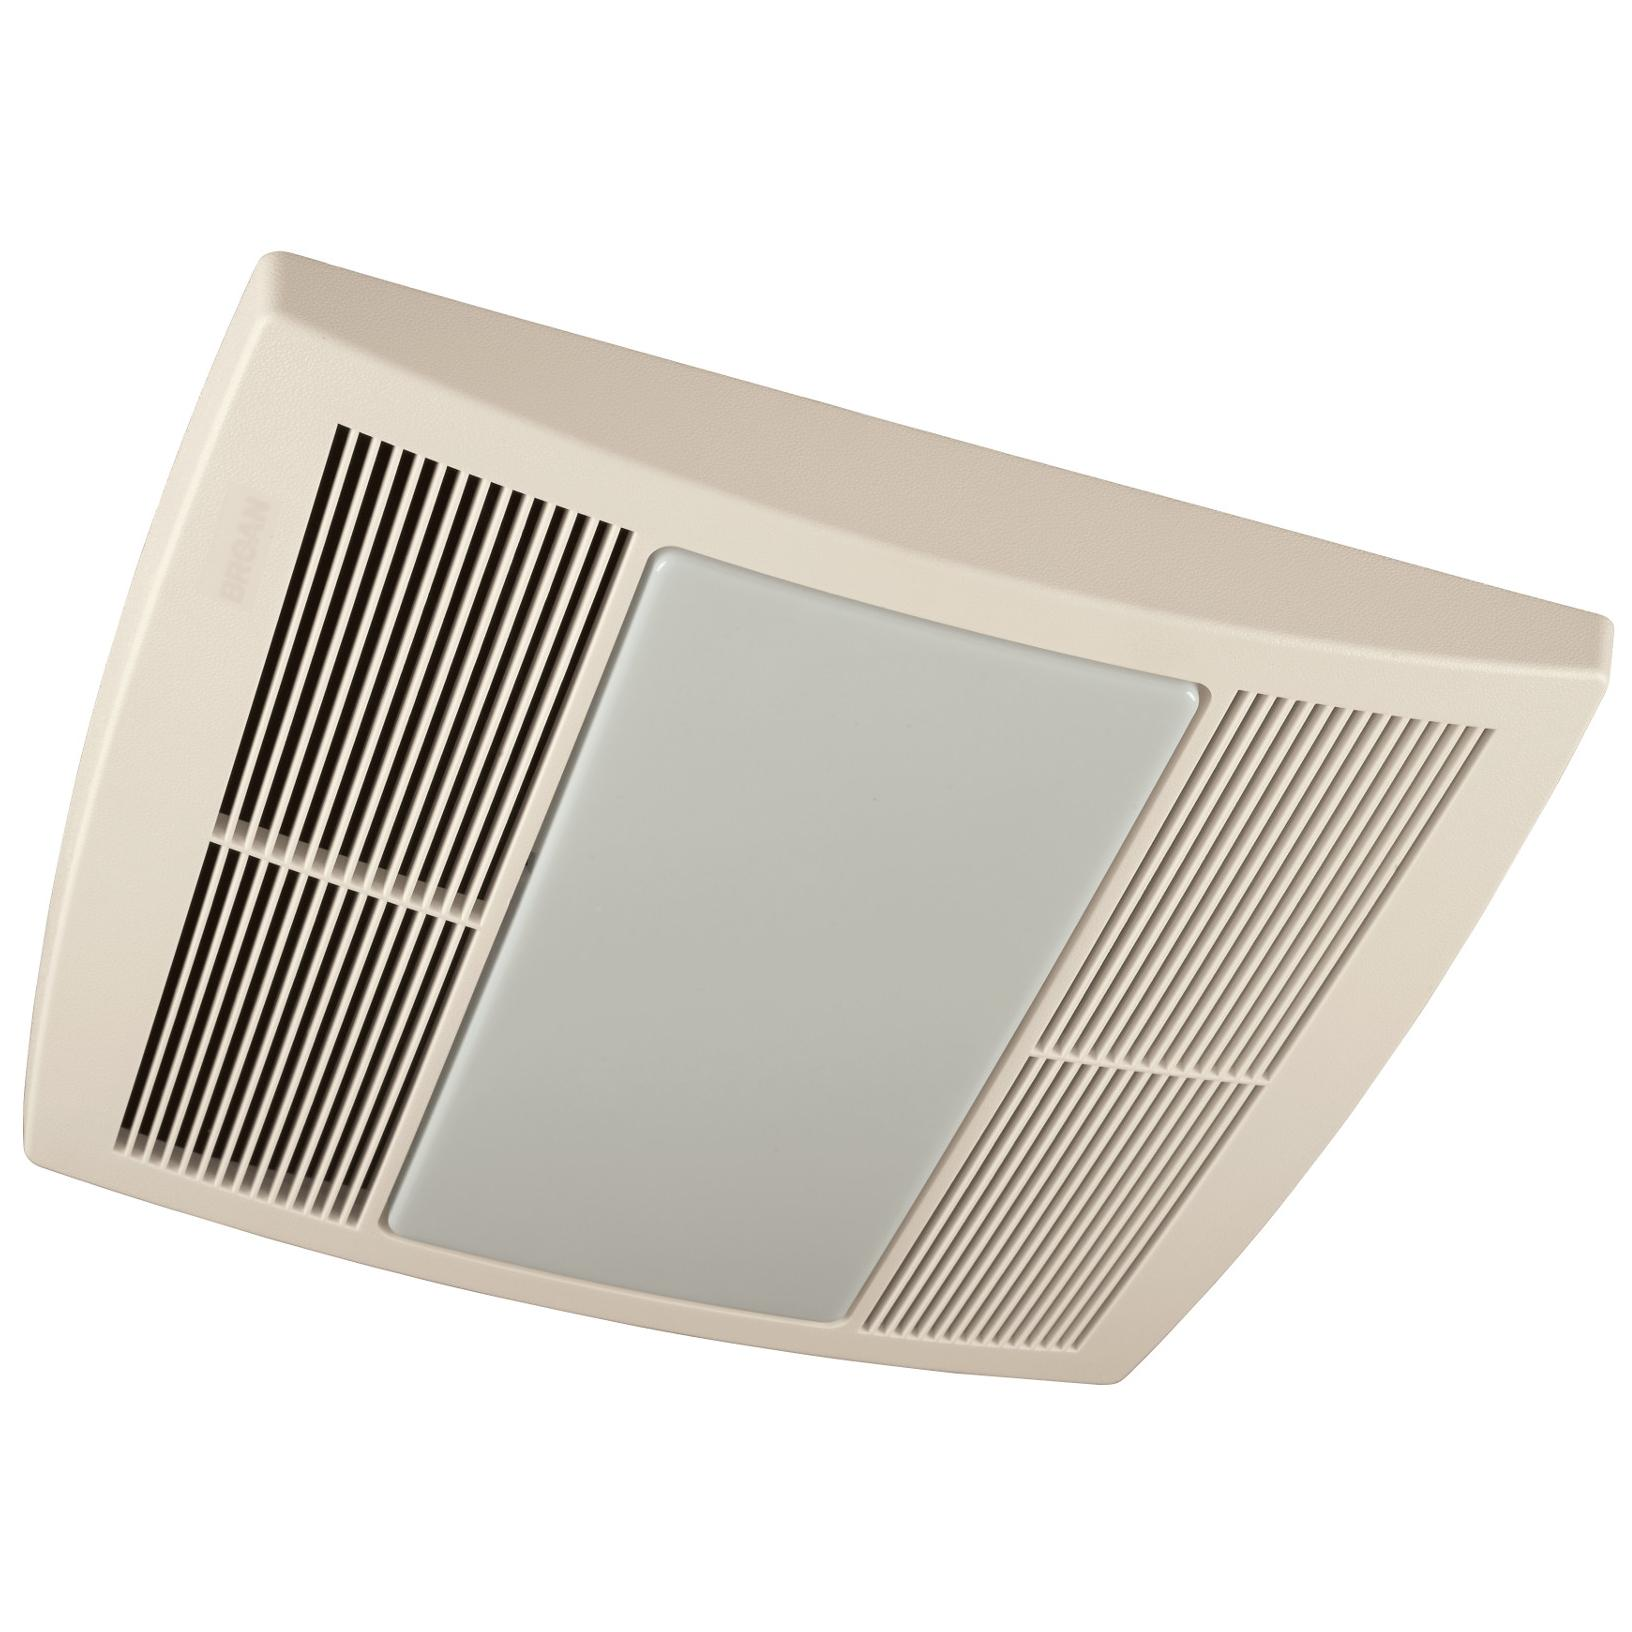 Broan QTR110L Quiet Bath Fan, Fan/ Light/Night Light, 110 CFM